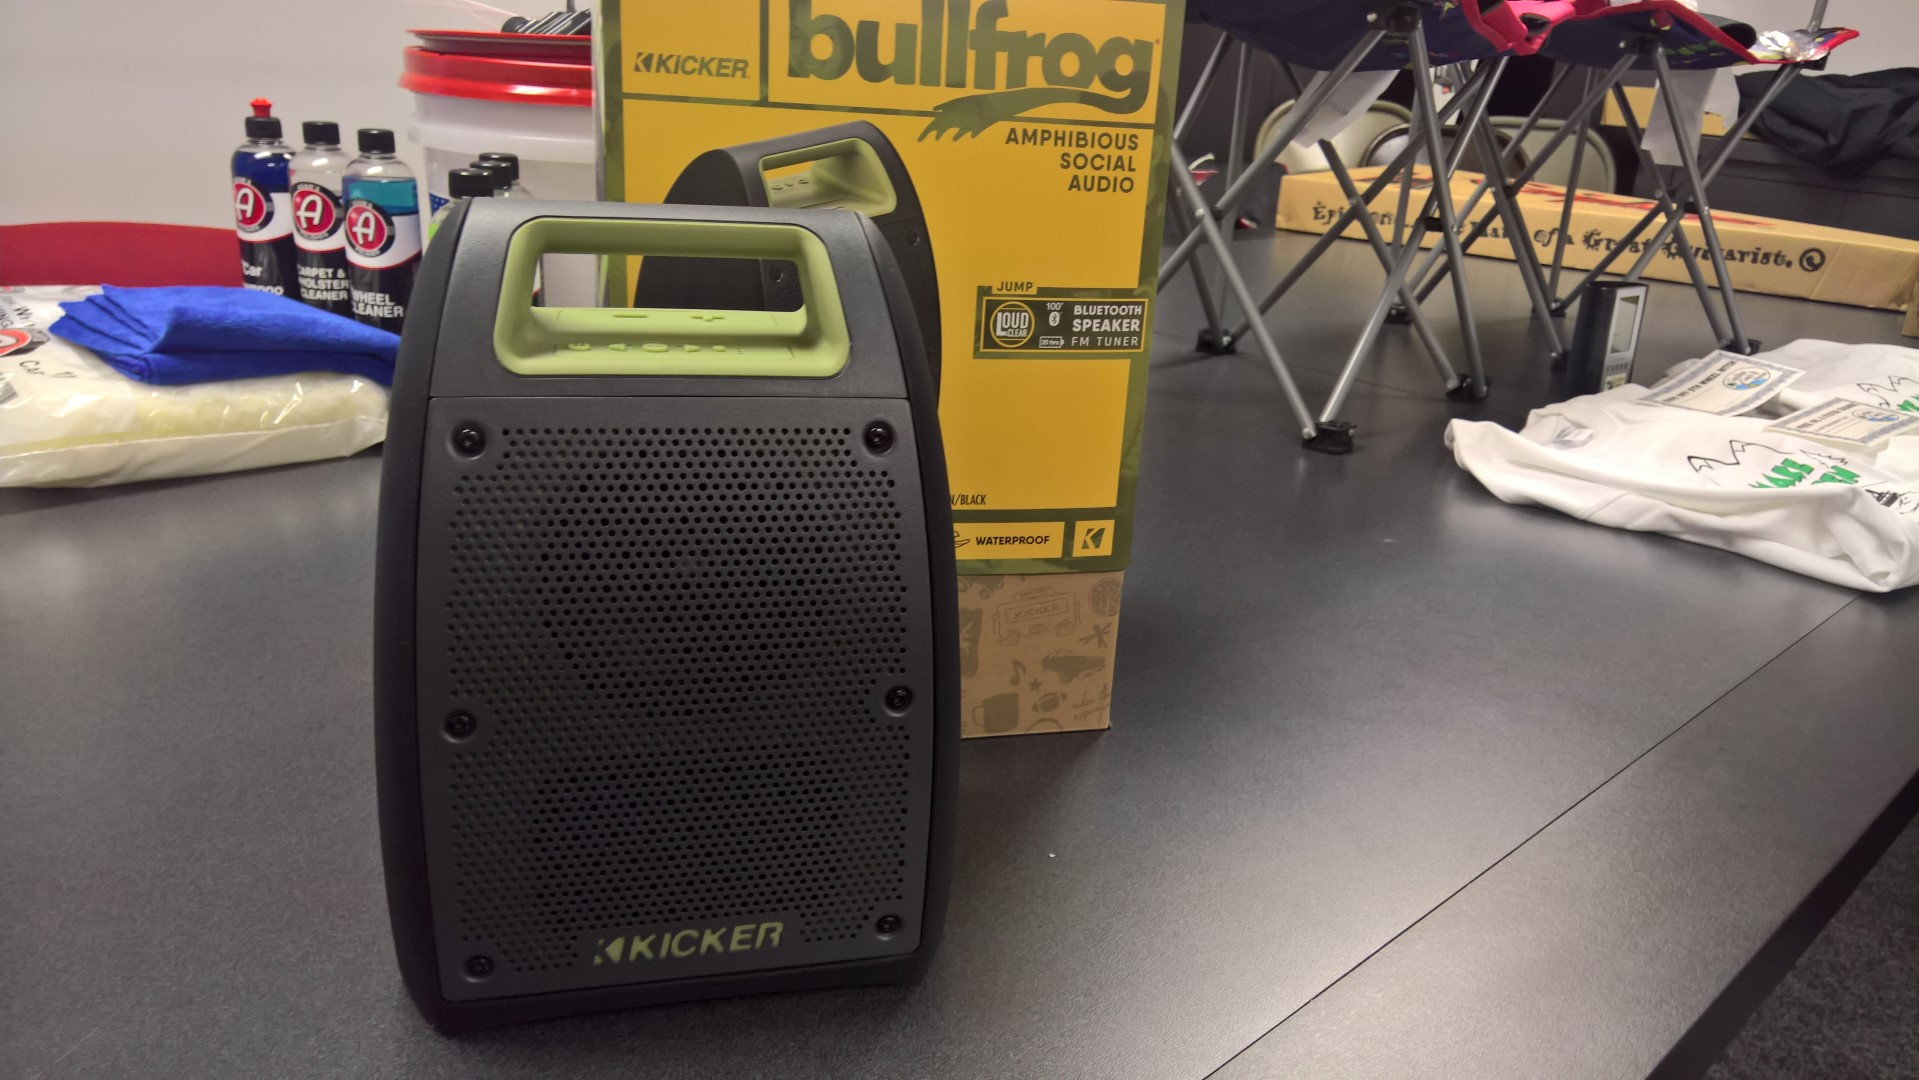 Kicker Bullfrog Bluetooth Loud Speaker with FM Tuner